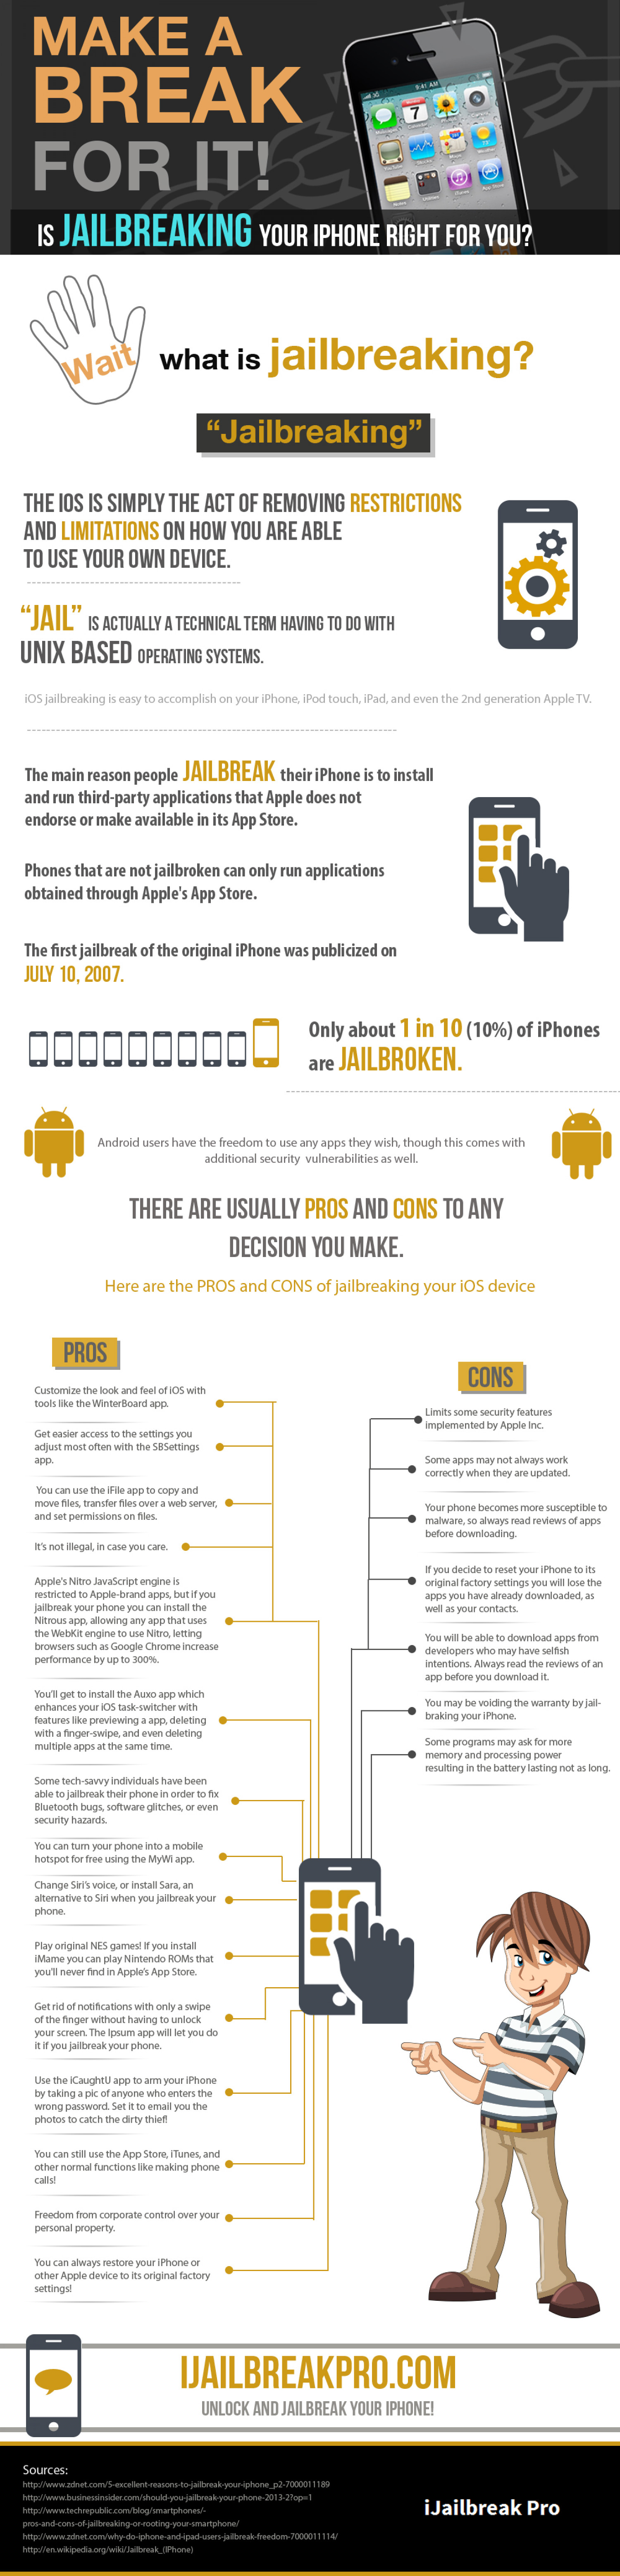 Make a Break For It! Infographic